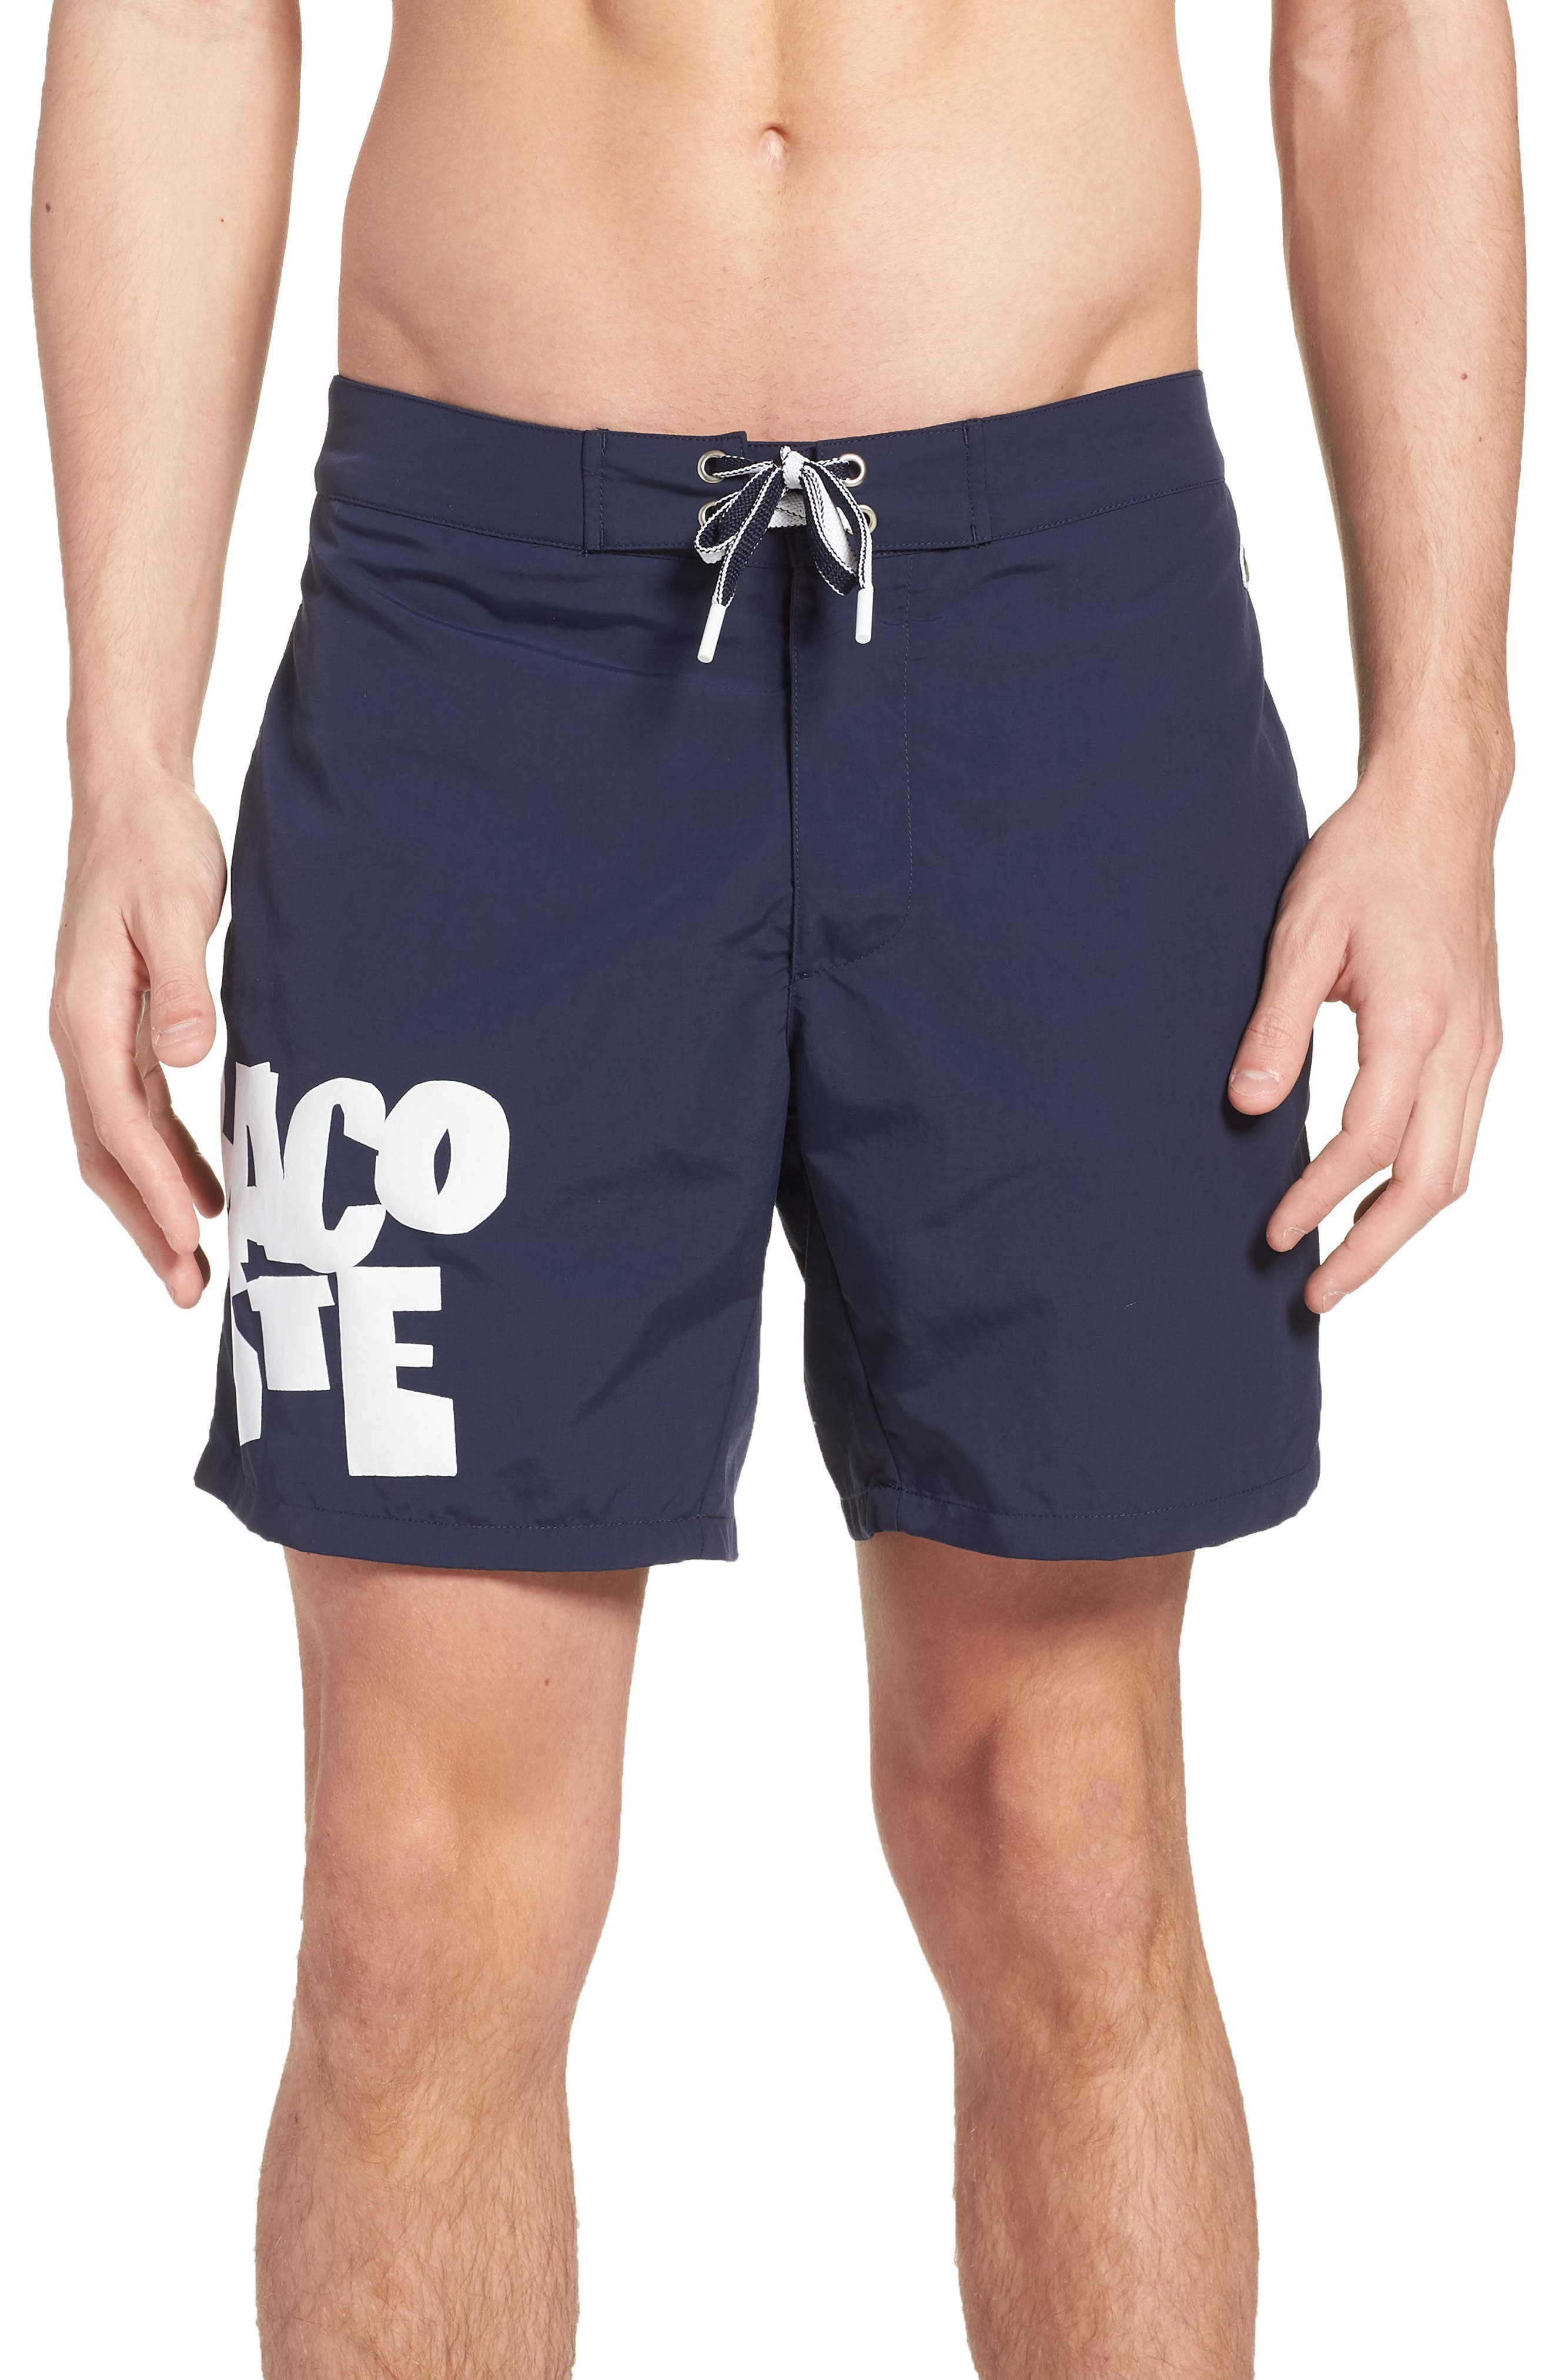 Graphic Swim Trunks,                             Main thumbnail 1, color,                             410